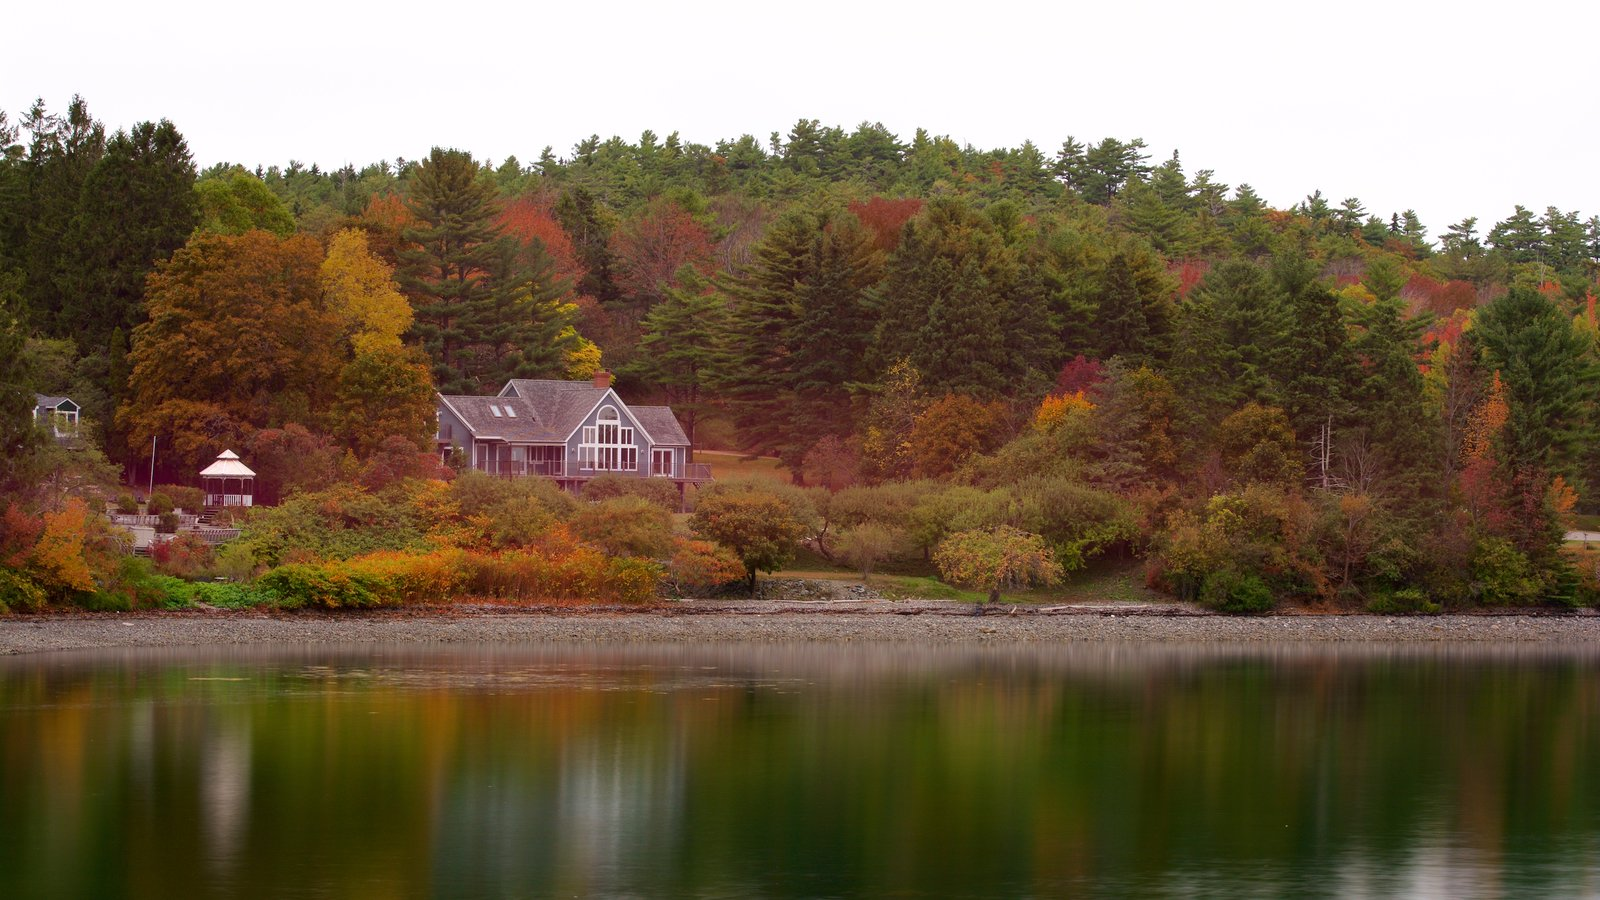 Acadia - North Coast featuring forests, a lake or waterhole and a house